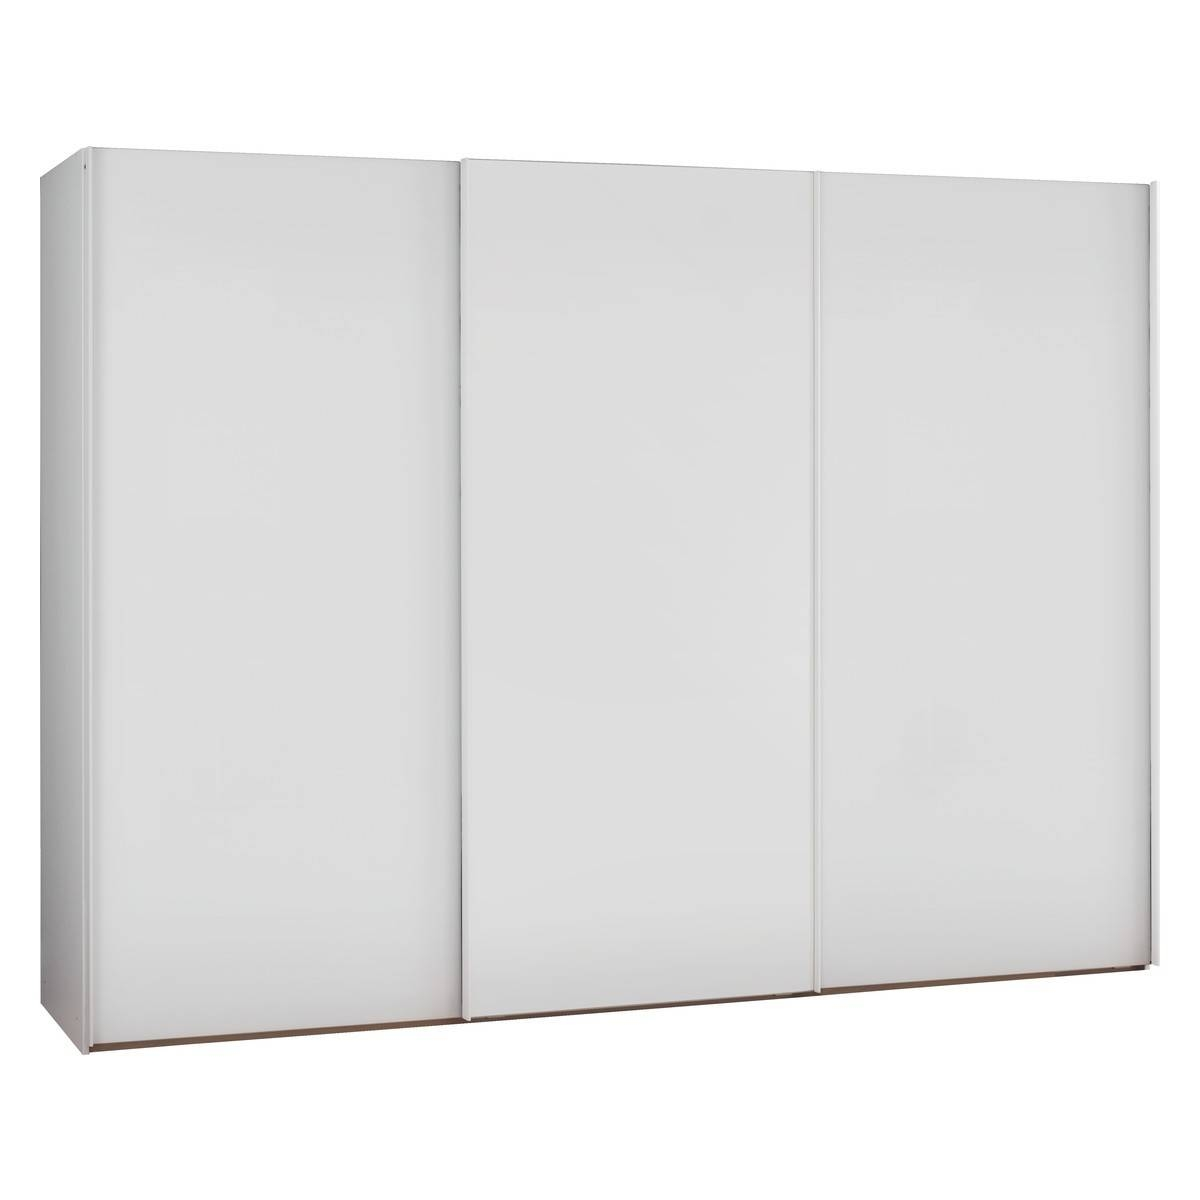 Kripton Matt White 3 Door Sliding Wardrobe W300 X H223Cm | Buy Now pertaining to 3 Door White Wardrobes (Image 10 of 30)